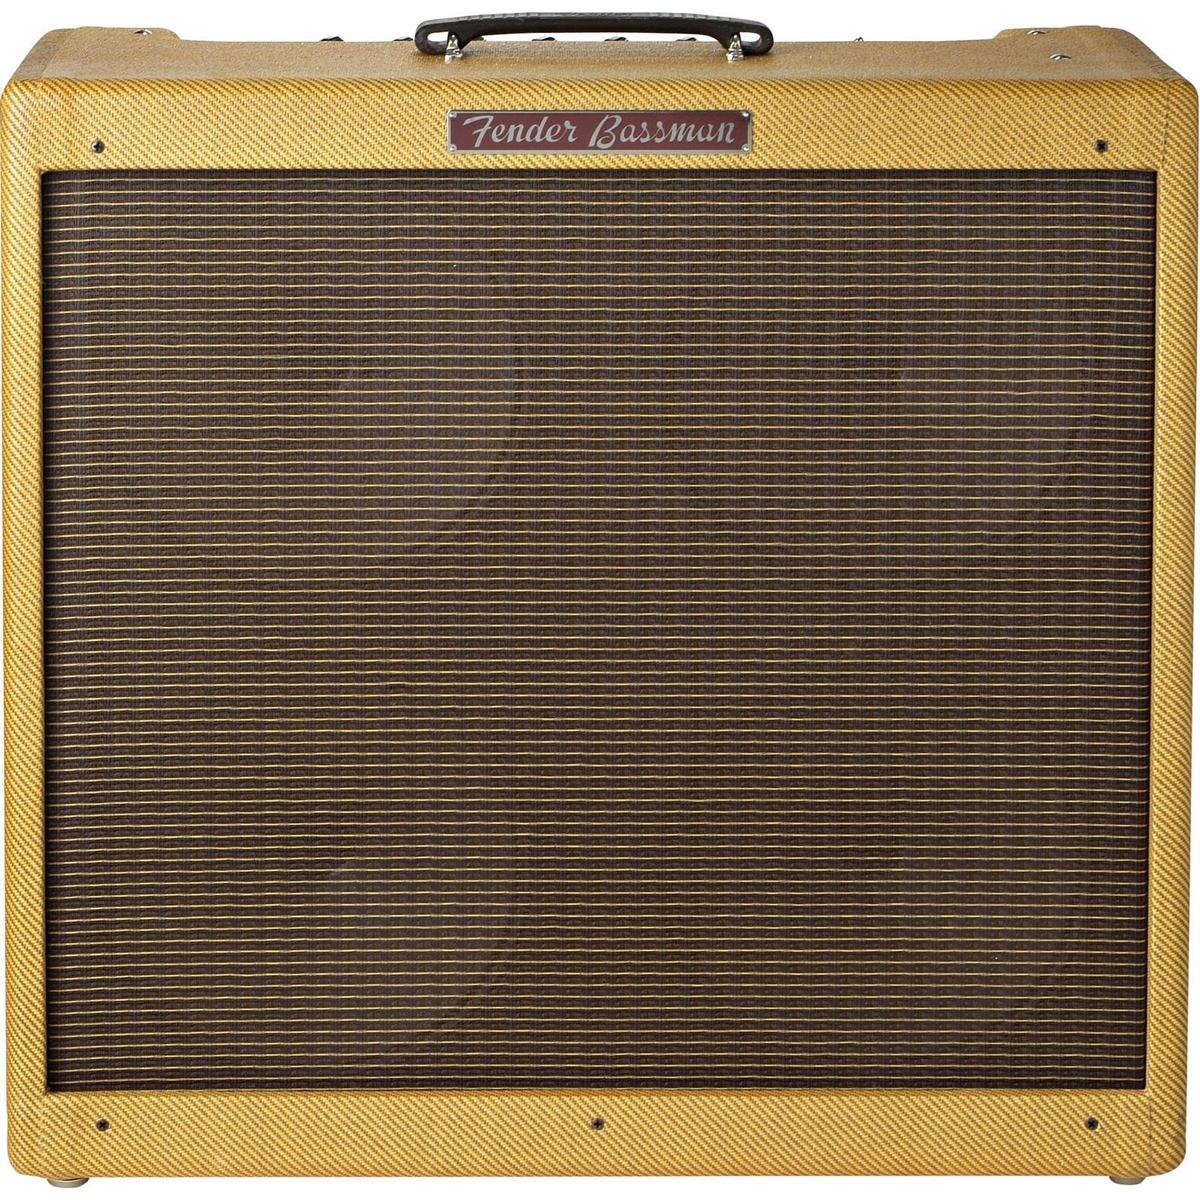 FENDER-59-BASSMAN-VINTAGE-REISSUE-LAQUERED-TWEED-AMPLI-2171006010-sku-1559